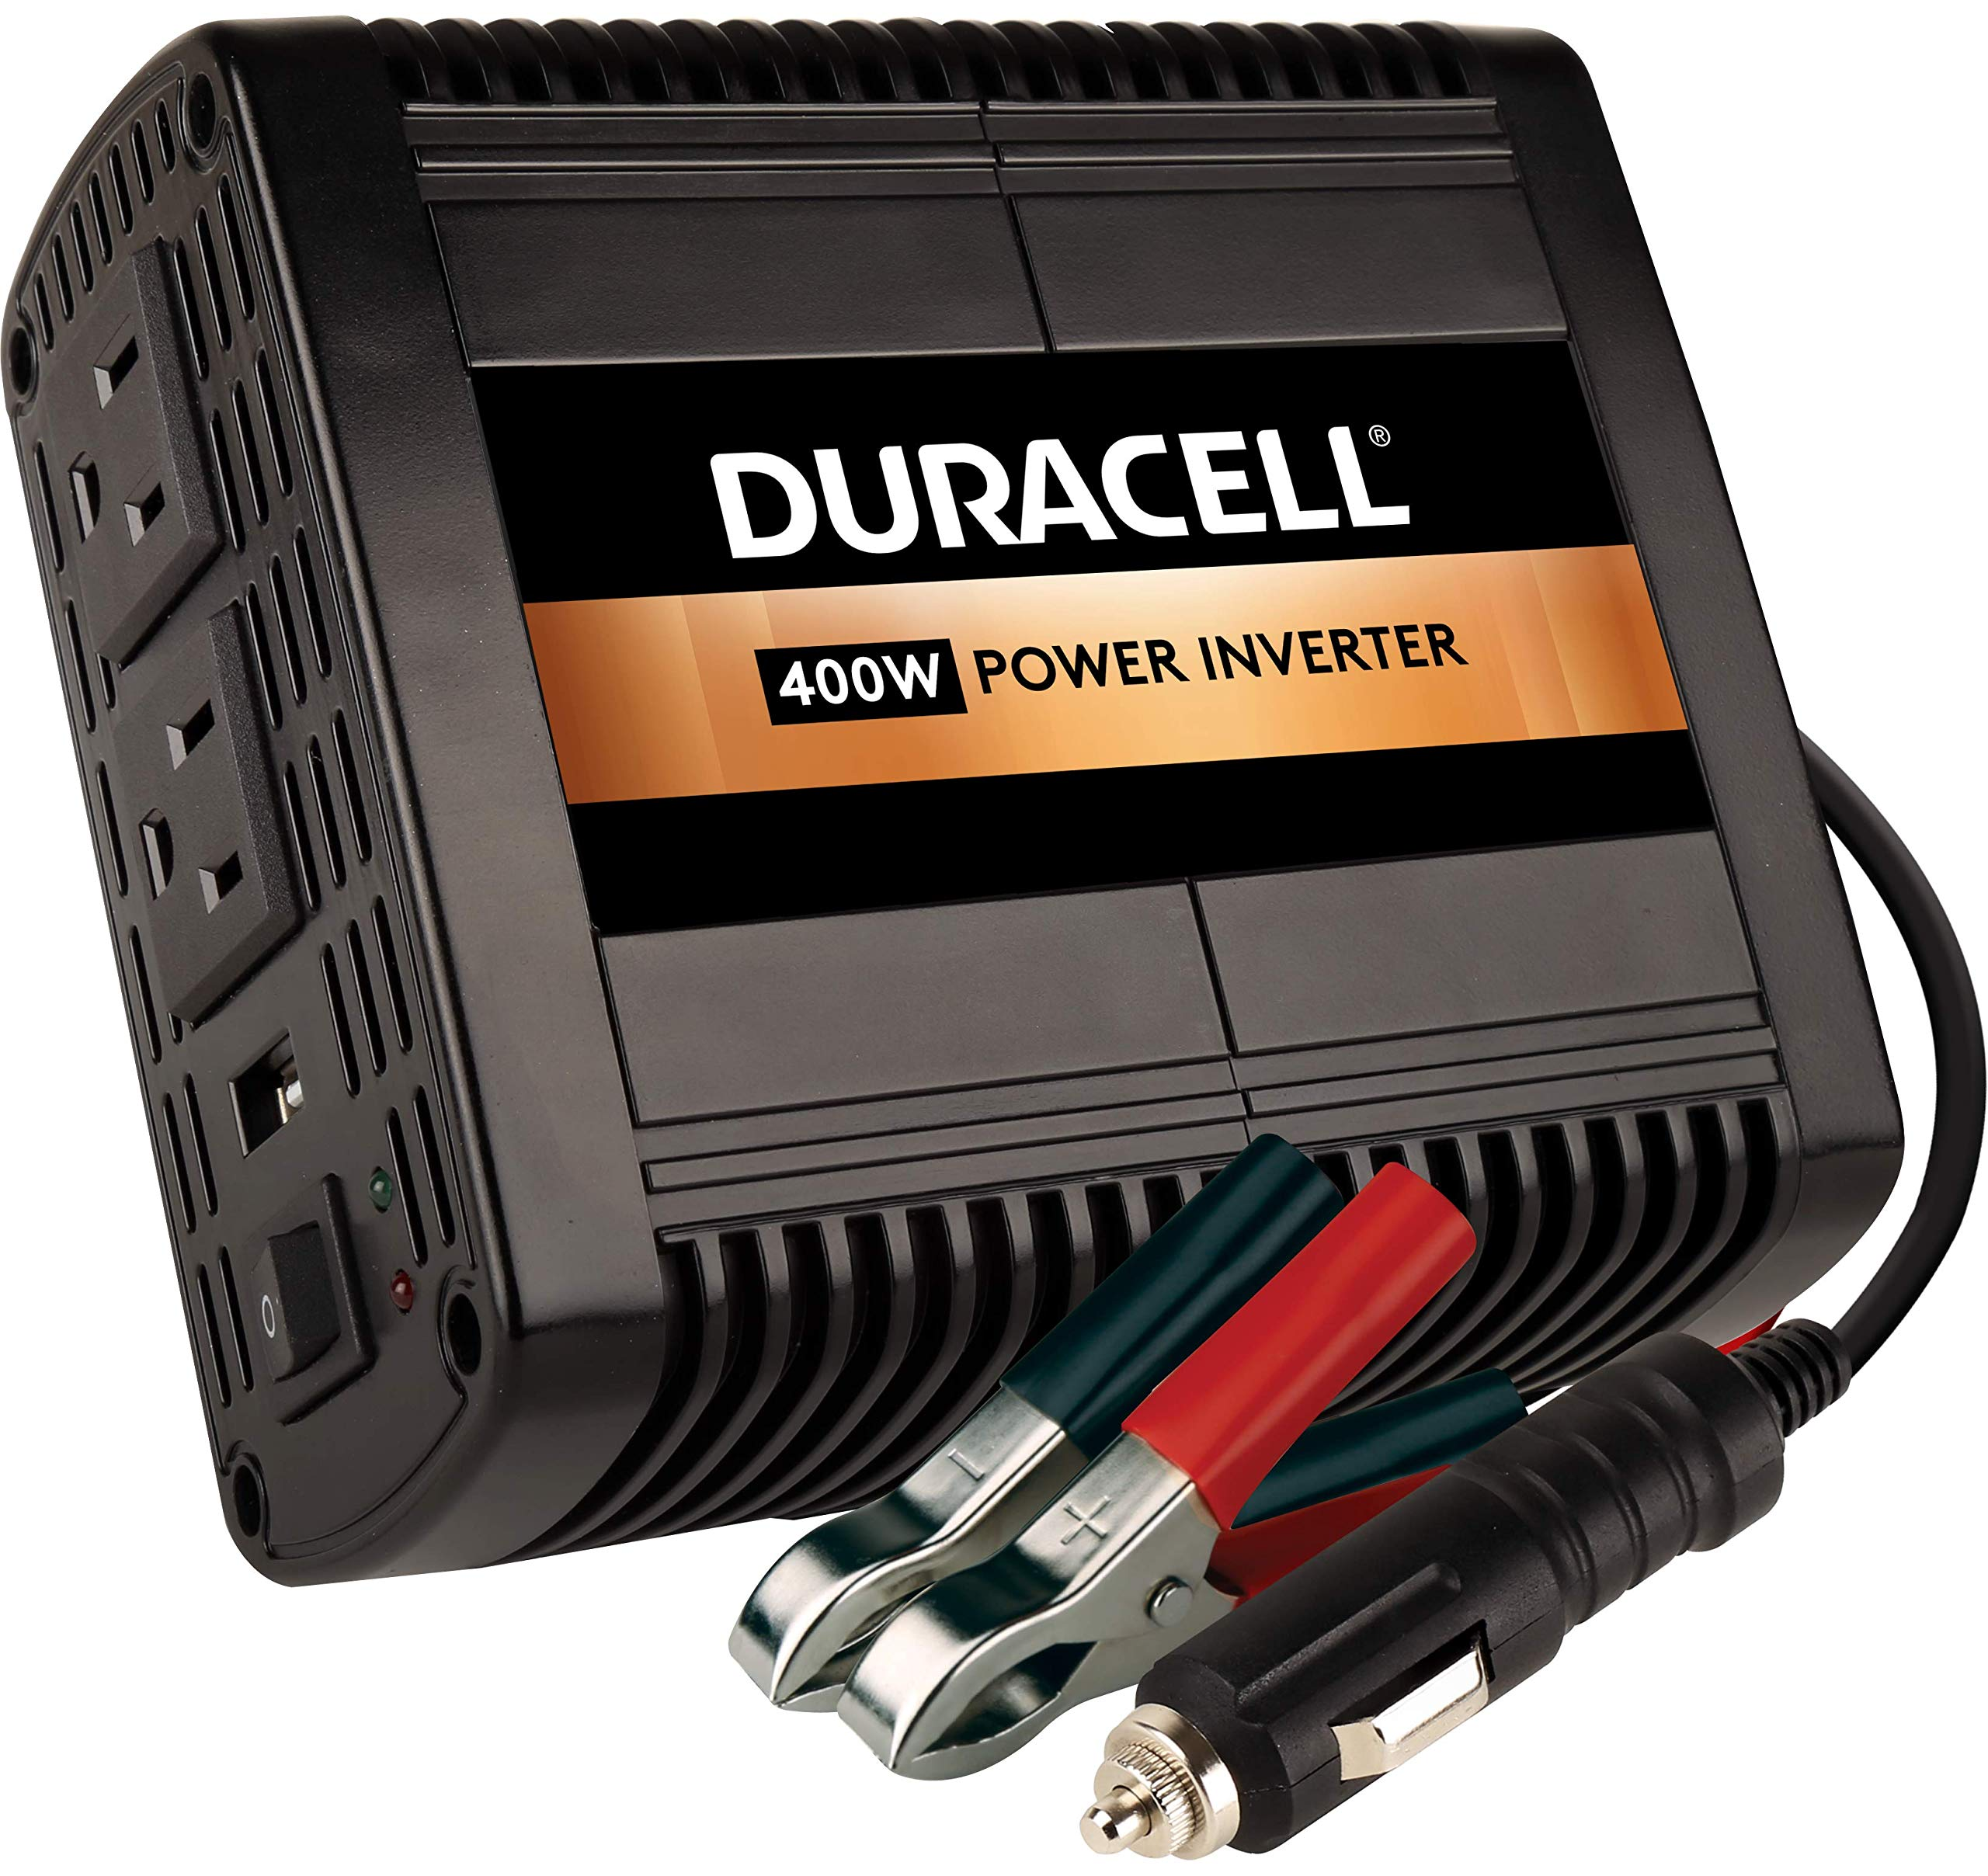 Duracell DRINV400 High Power Inverter 400 Watt Peak